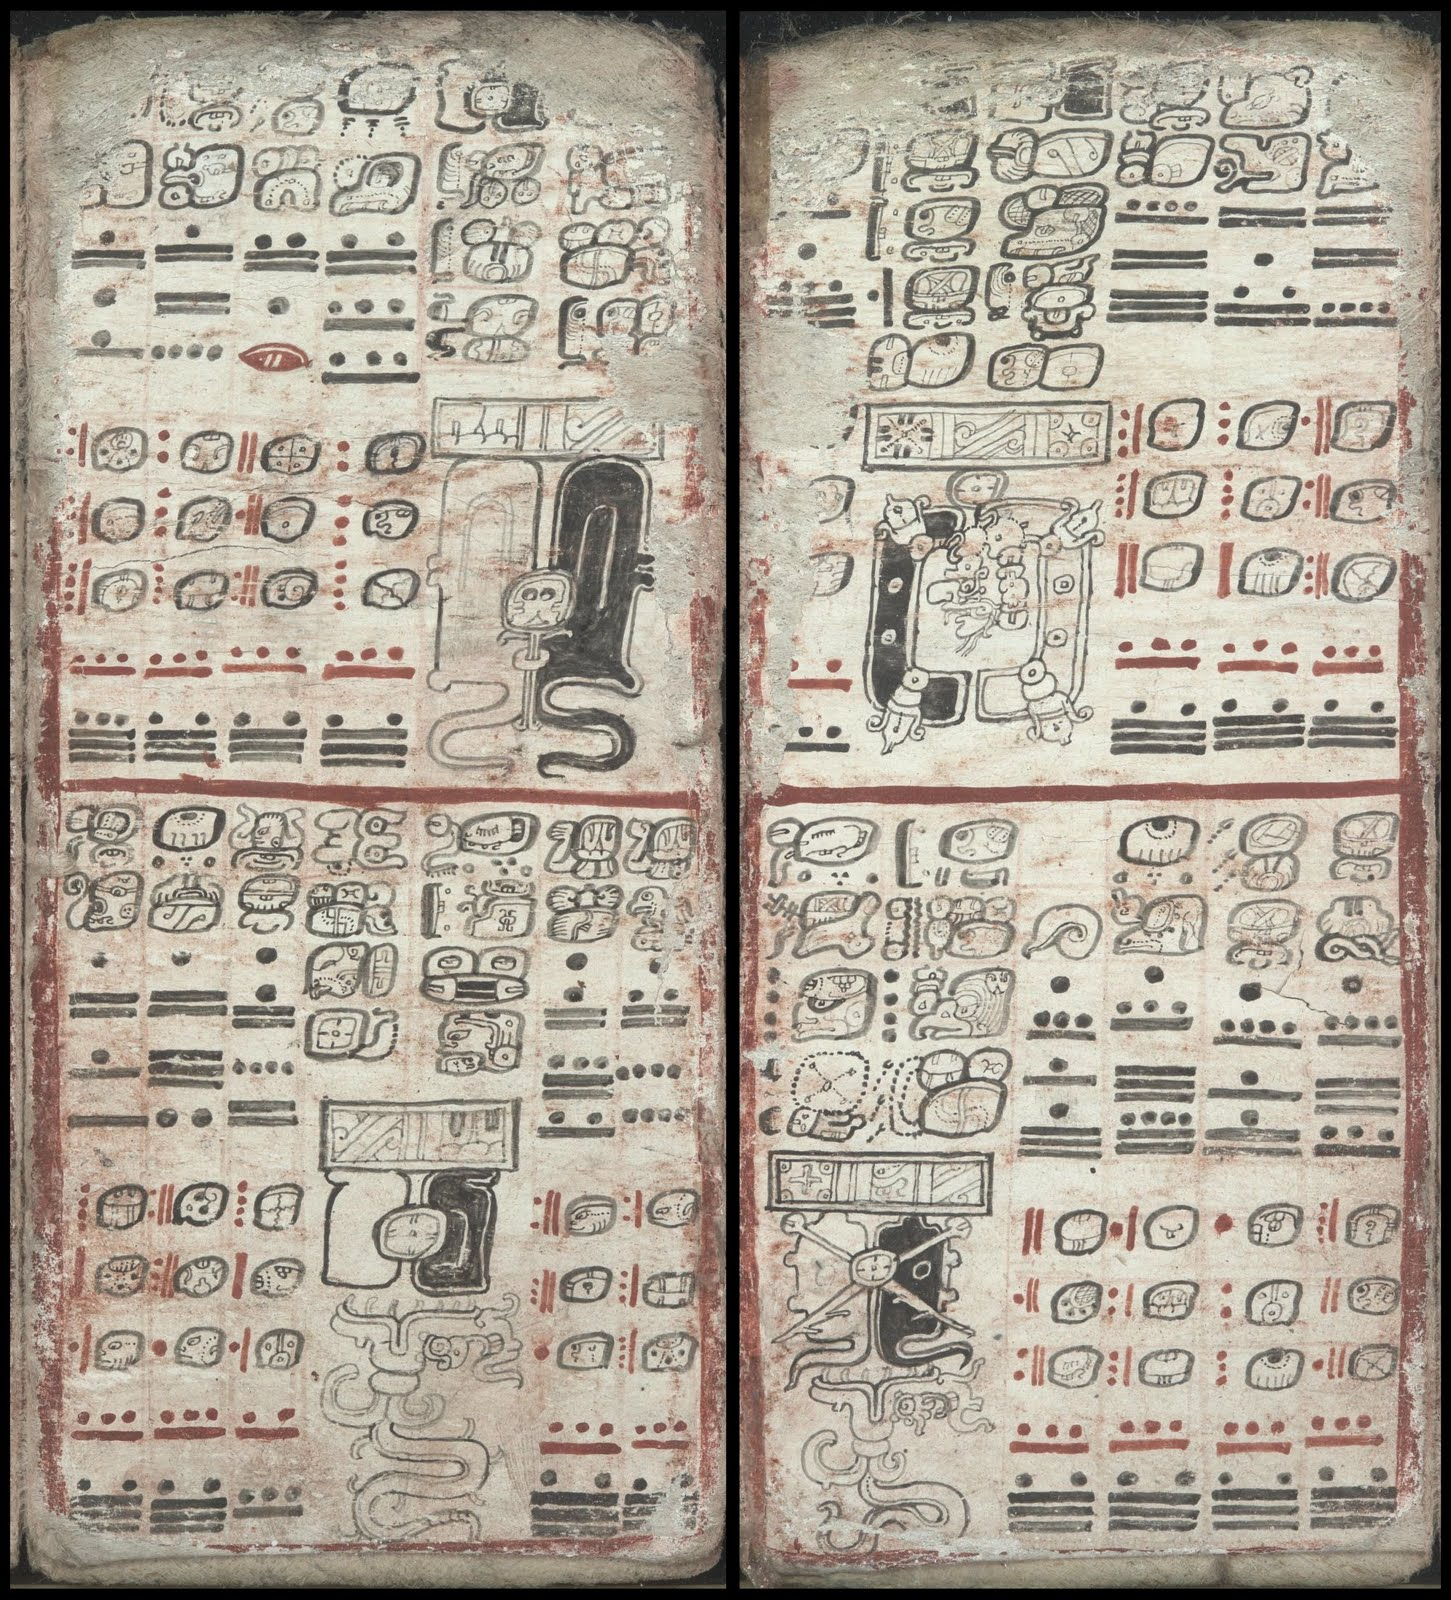 mayan codex - eclipse tables